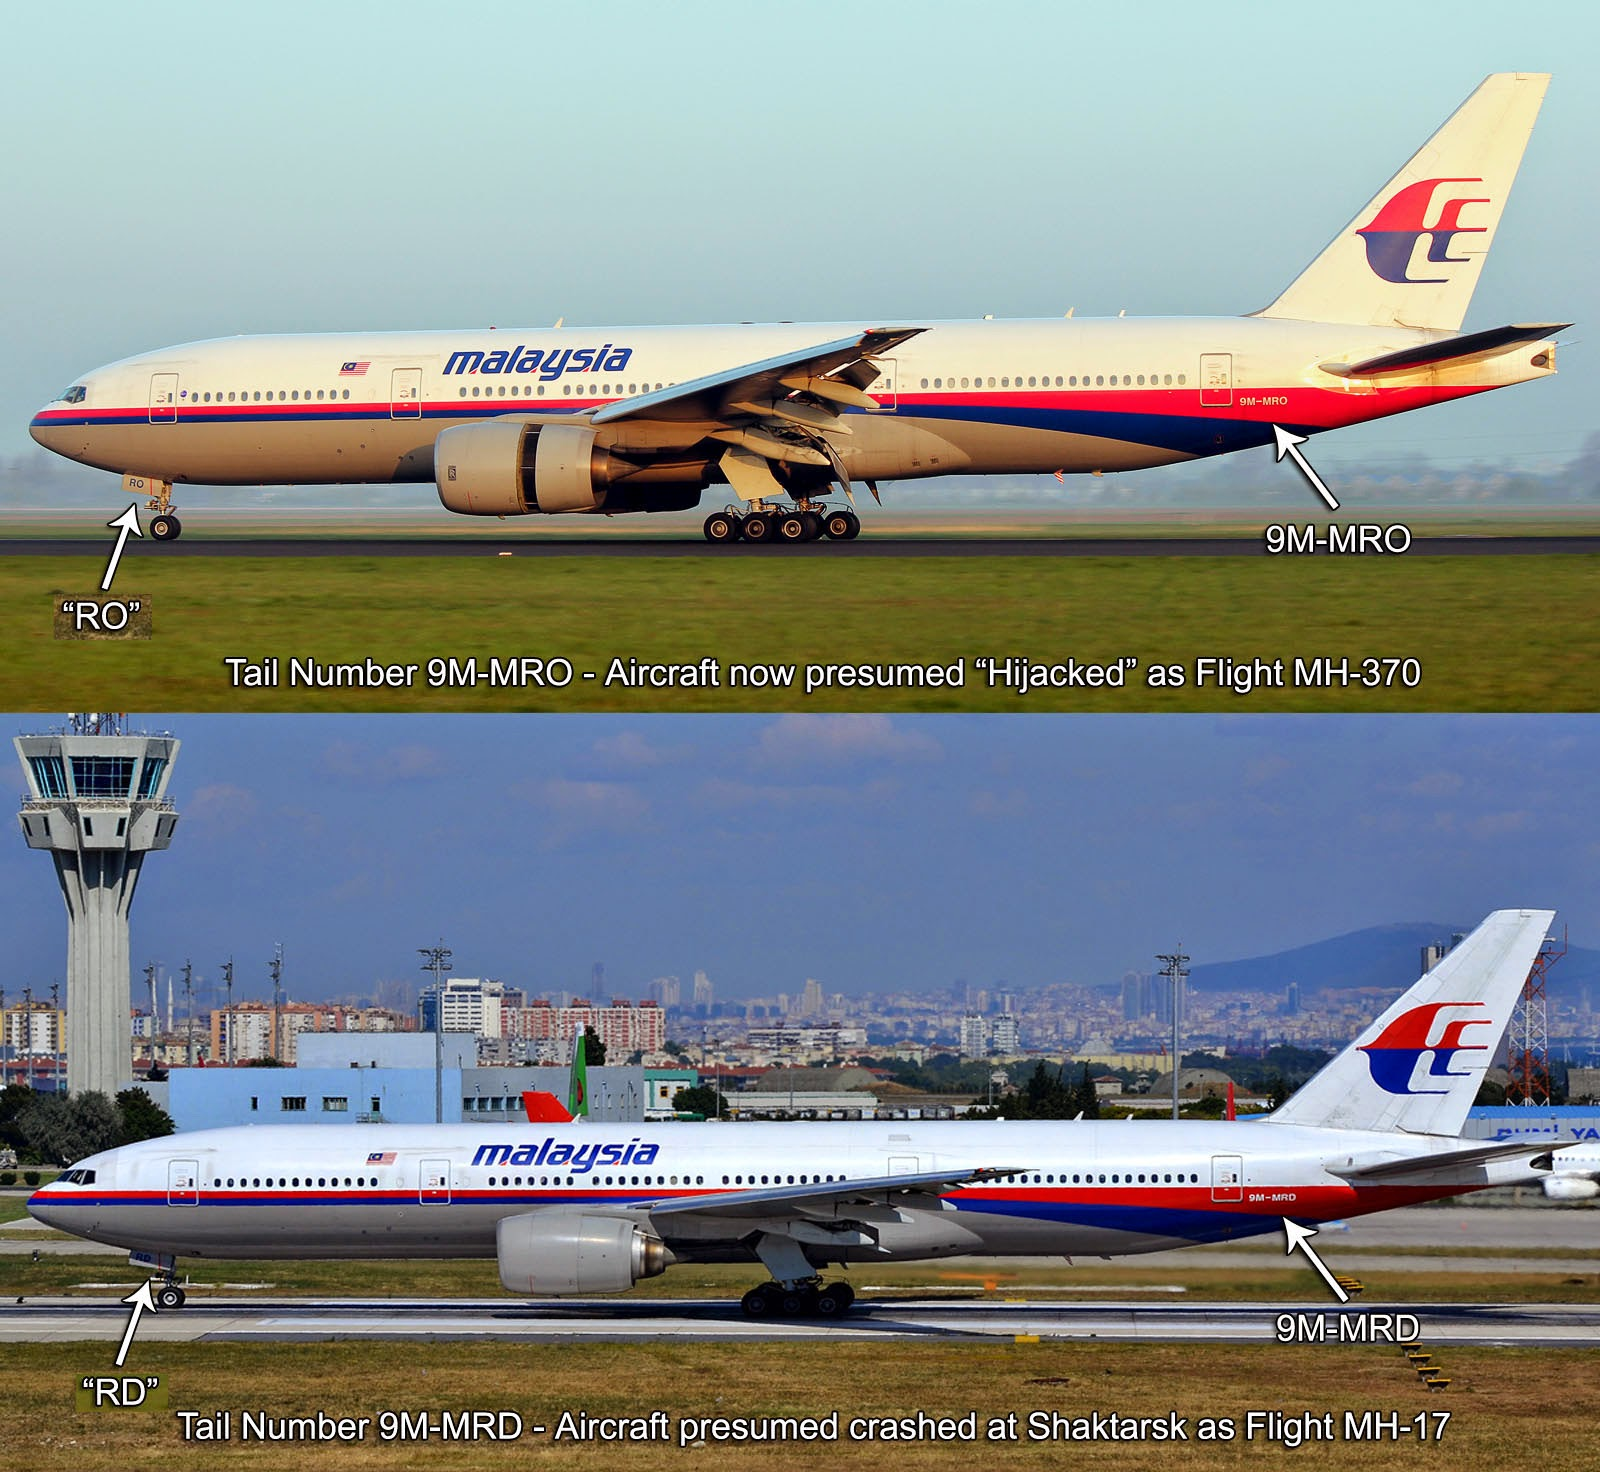 mh17 mh-370 conspiracy - the same